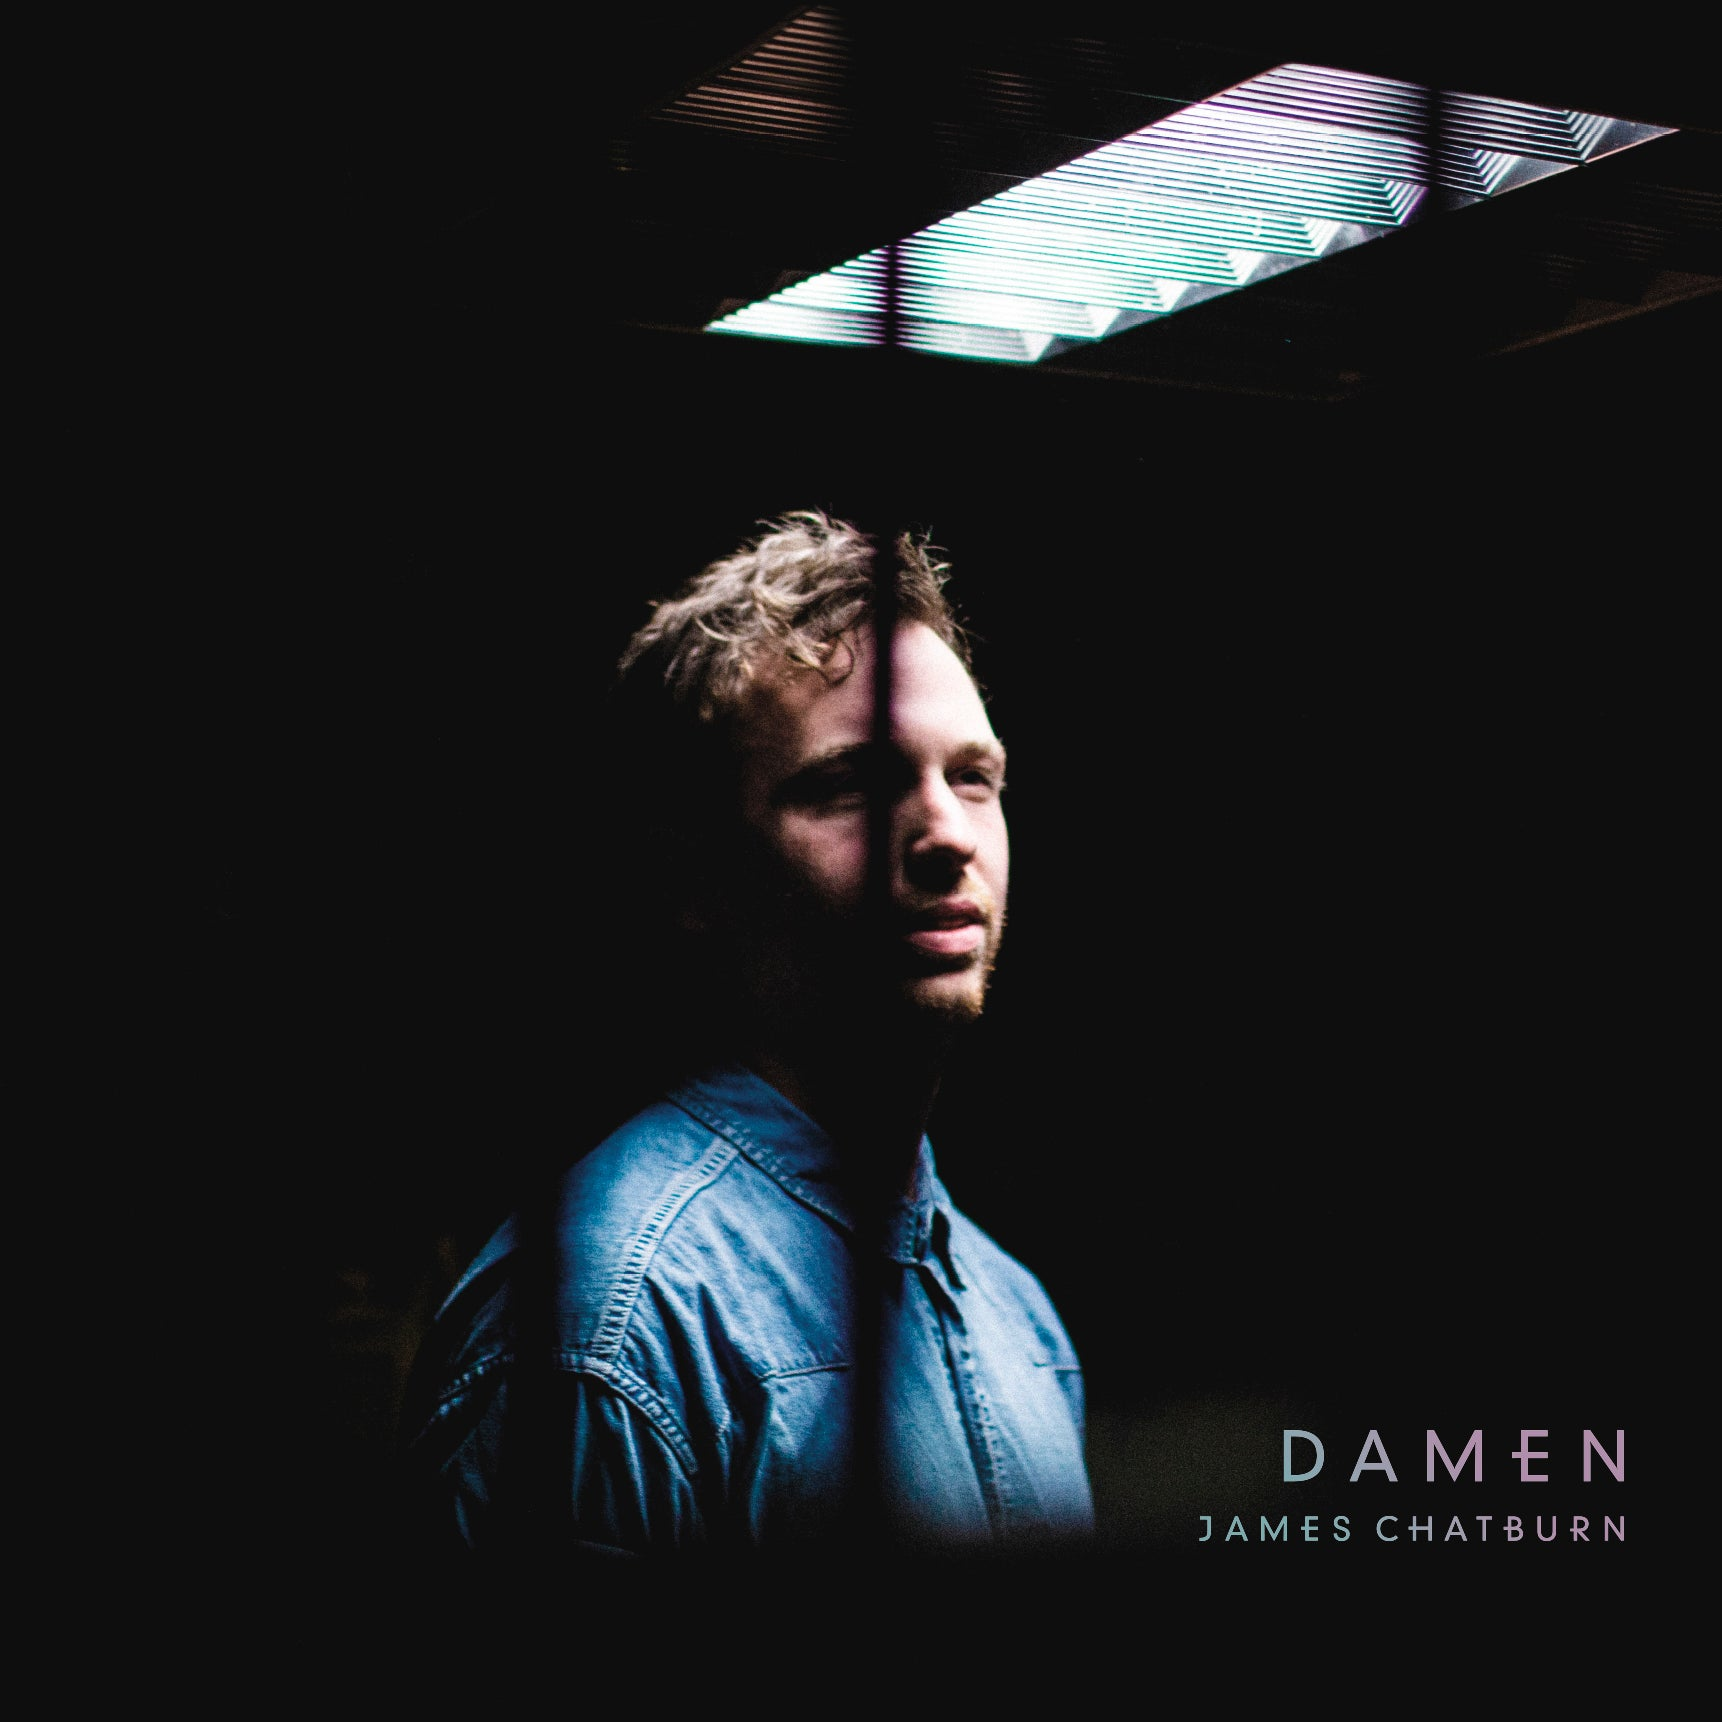 James Chatburn / Damen